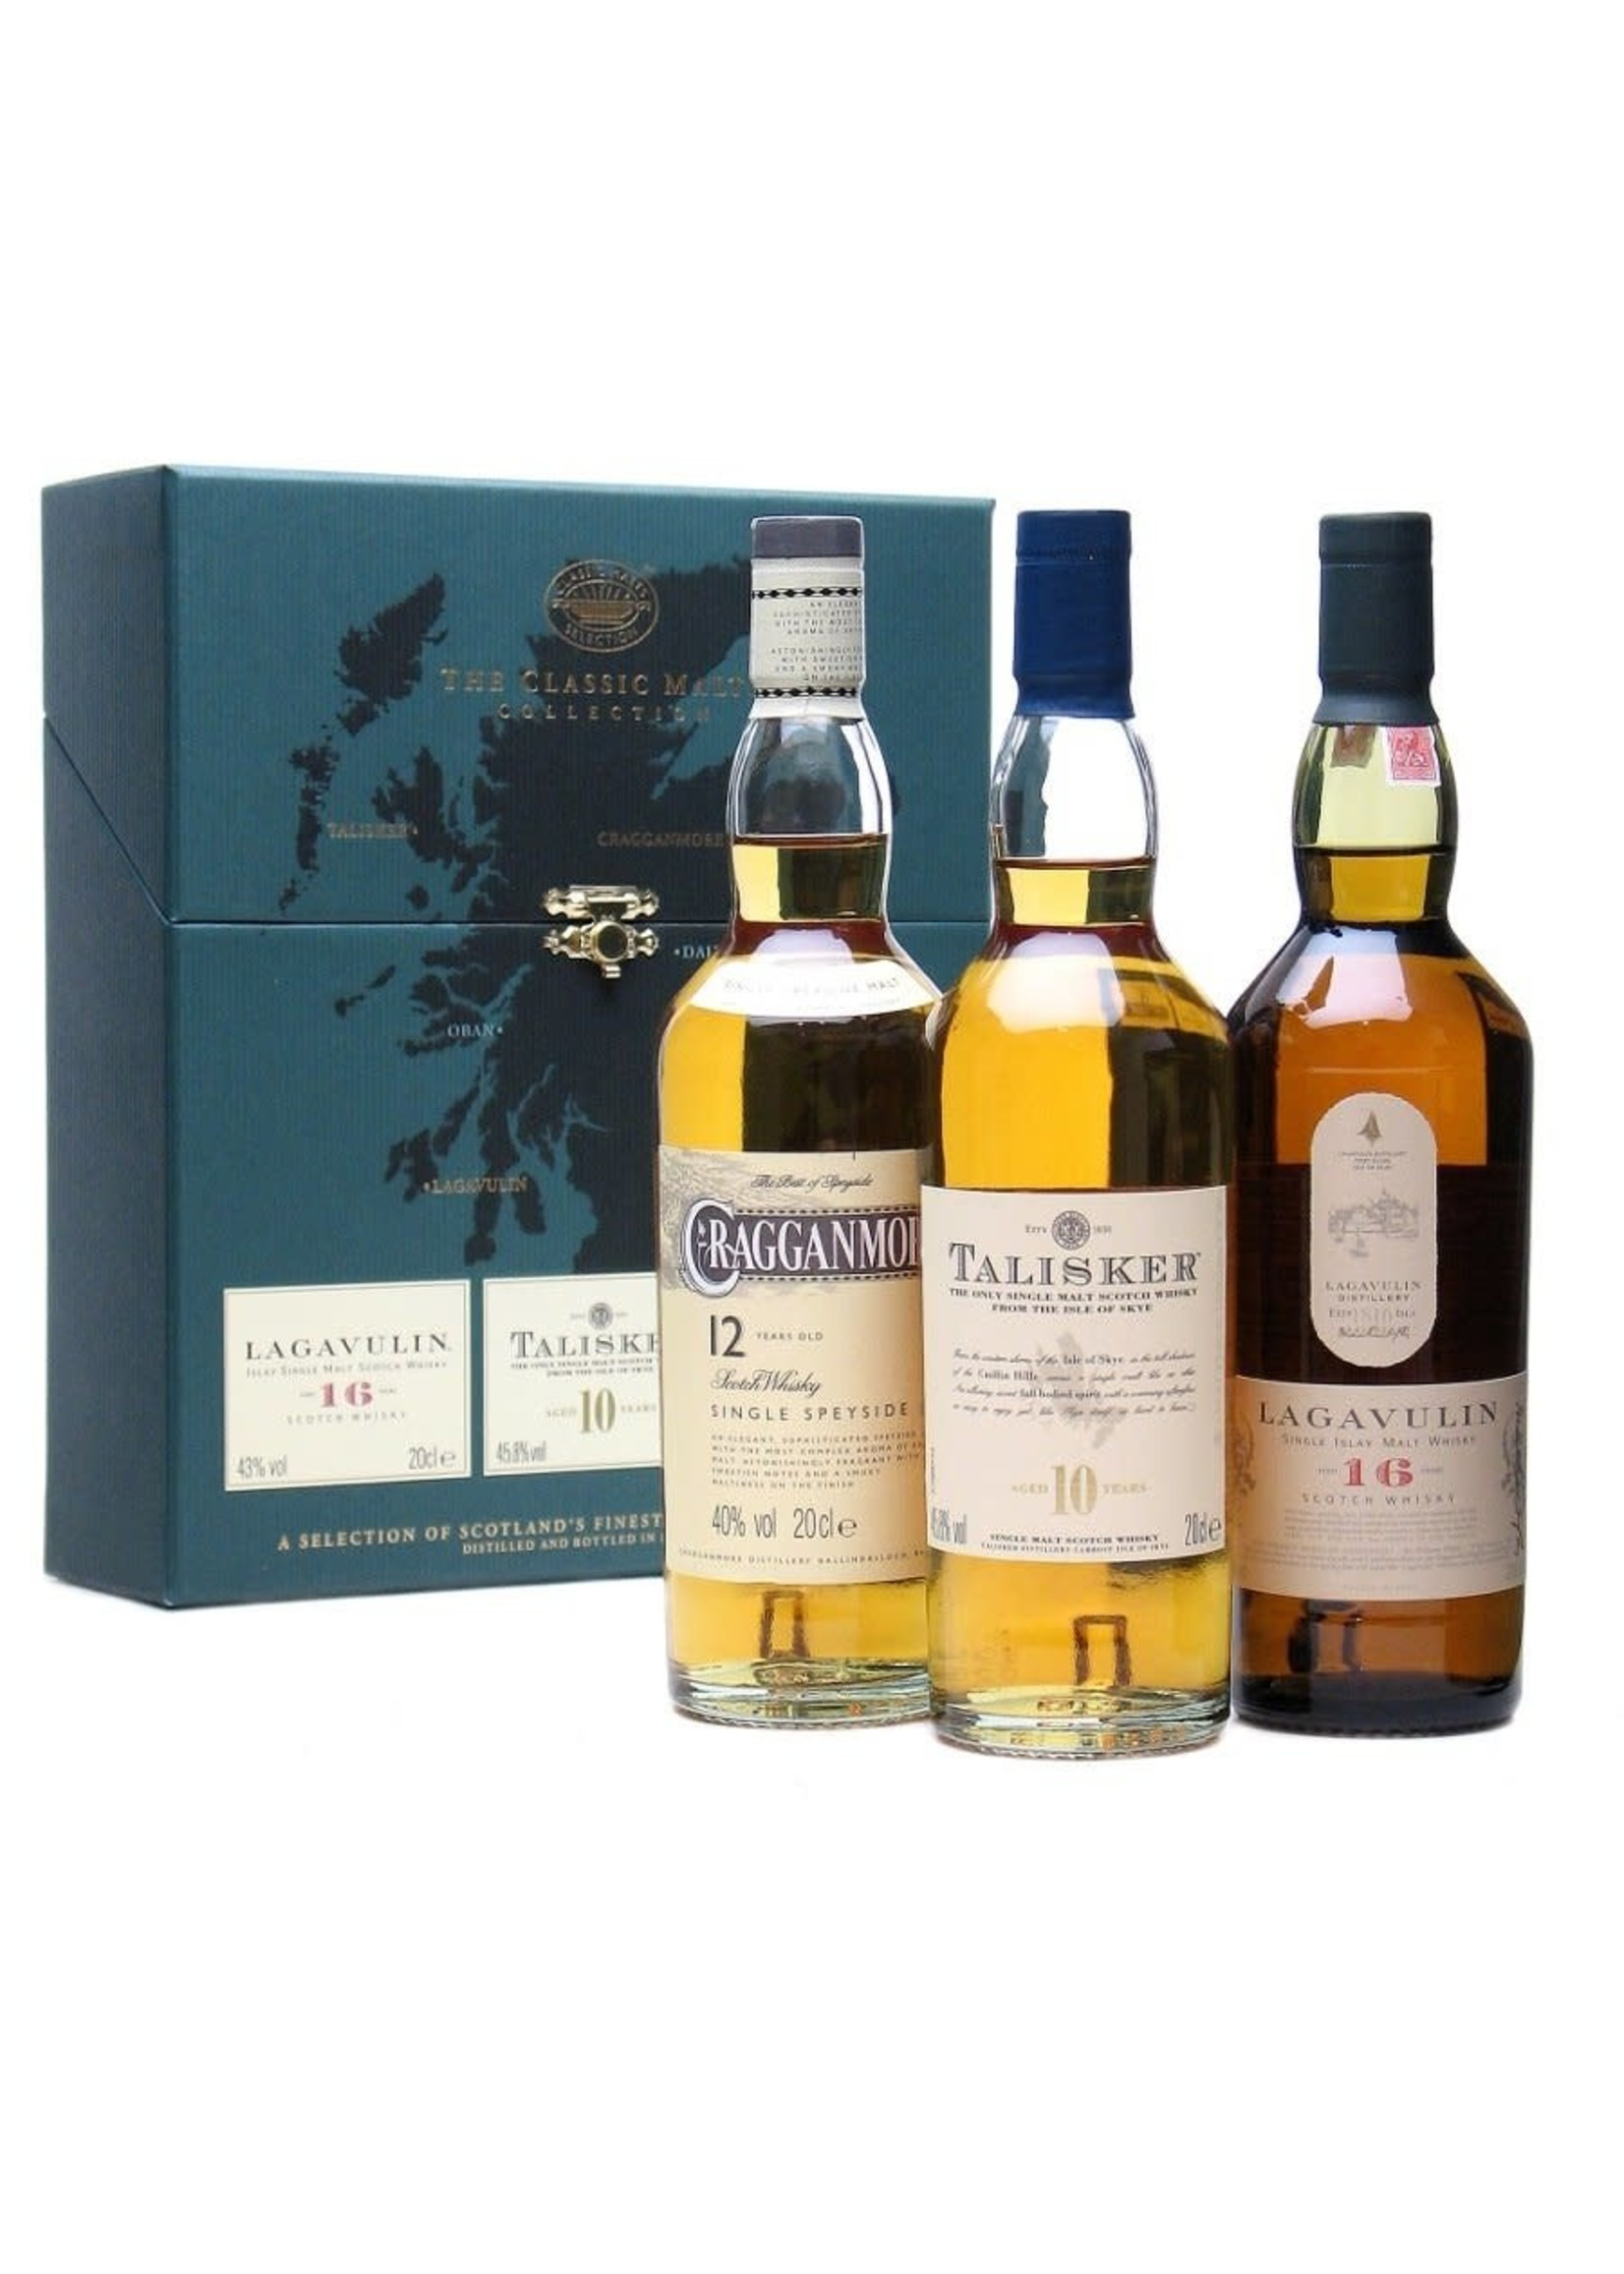 Diageo Classic Malts Selections, Strong Collection (10 Year Old Talisker, 12 Year Old Cragganmore, 16 Year Old Lagavulin) / 3x 200mL